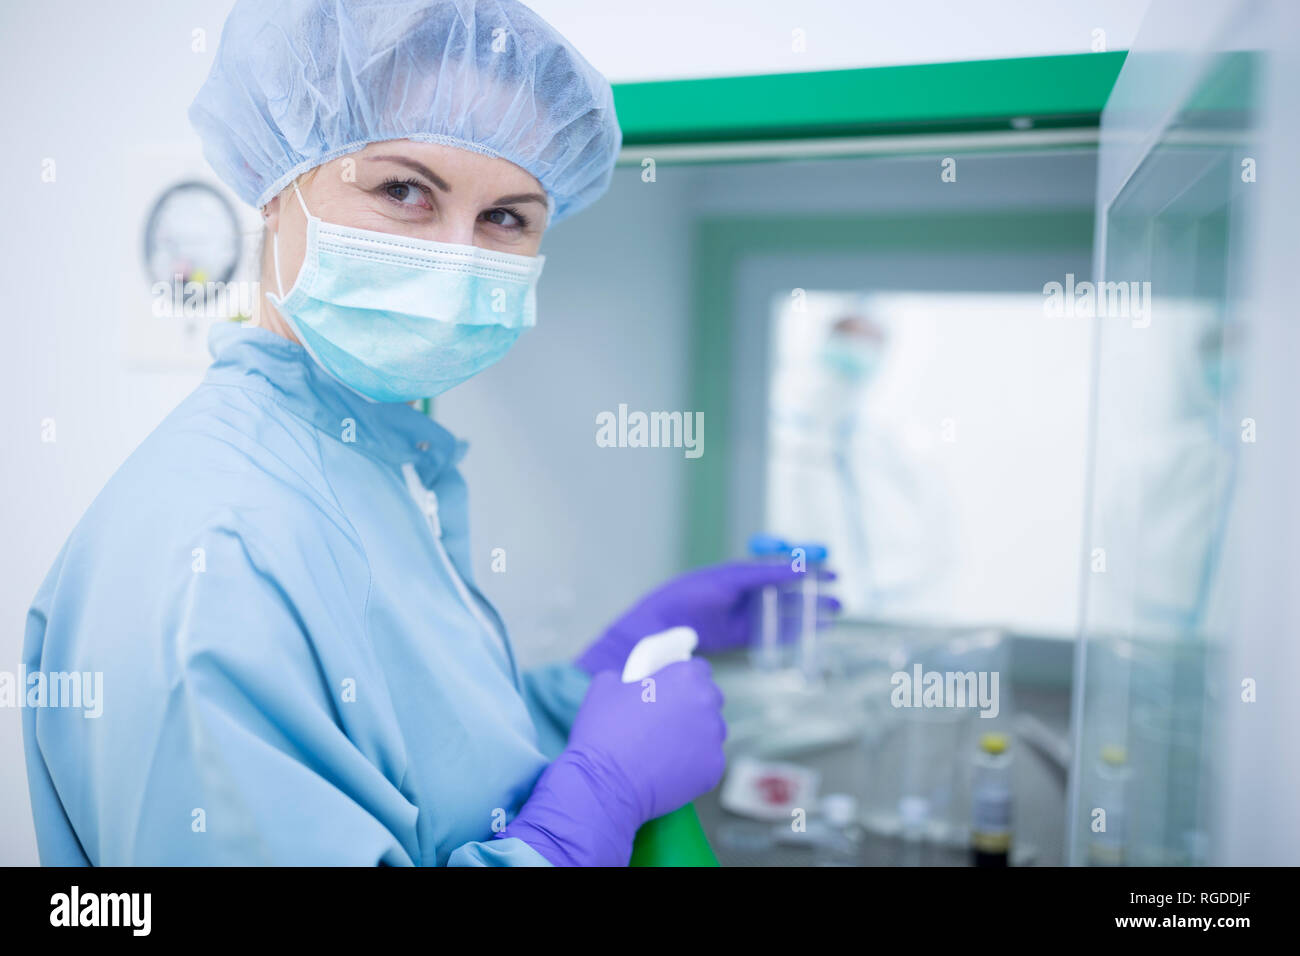 Transfer of material for drug production through material sluice - Stock Image